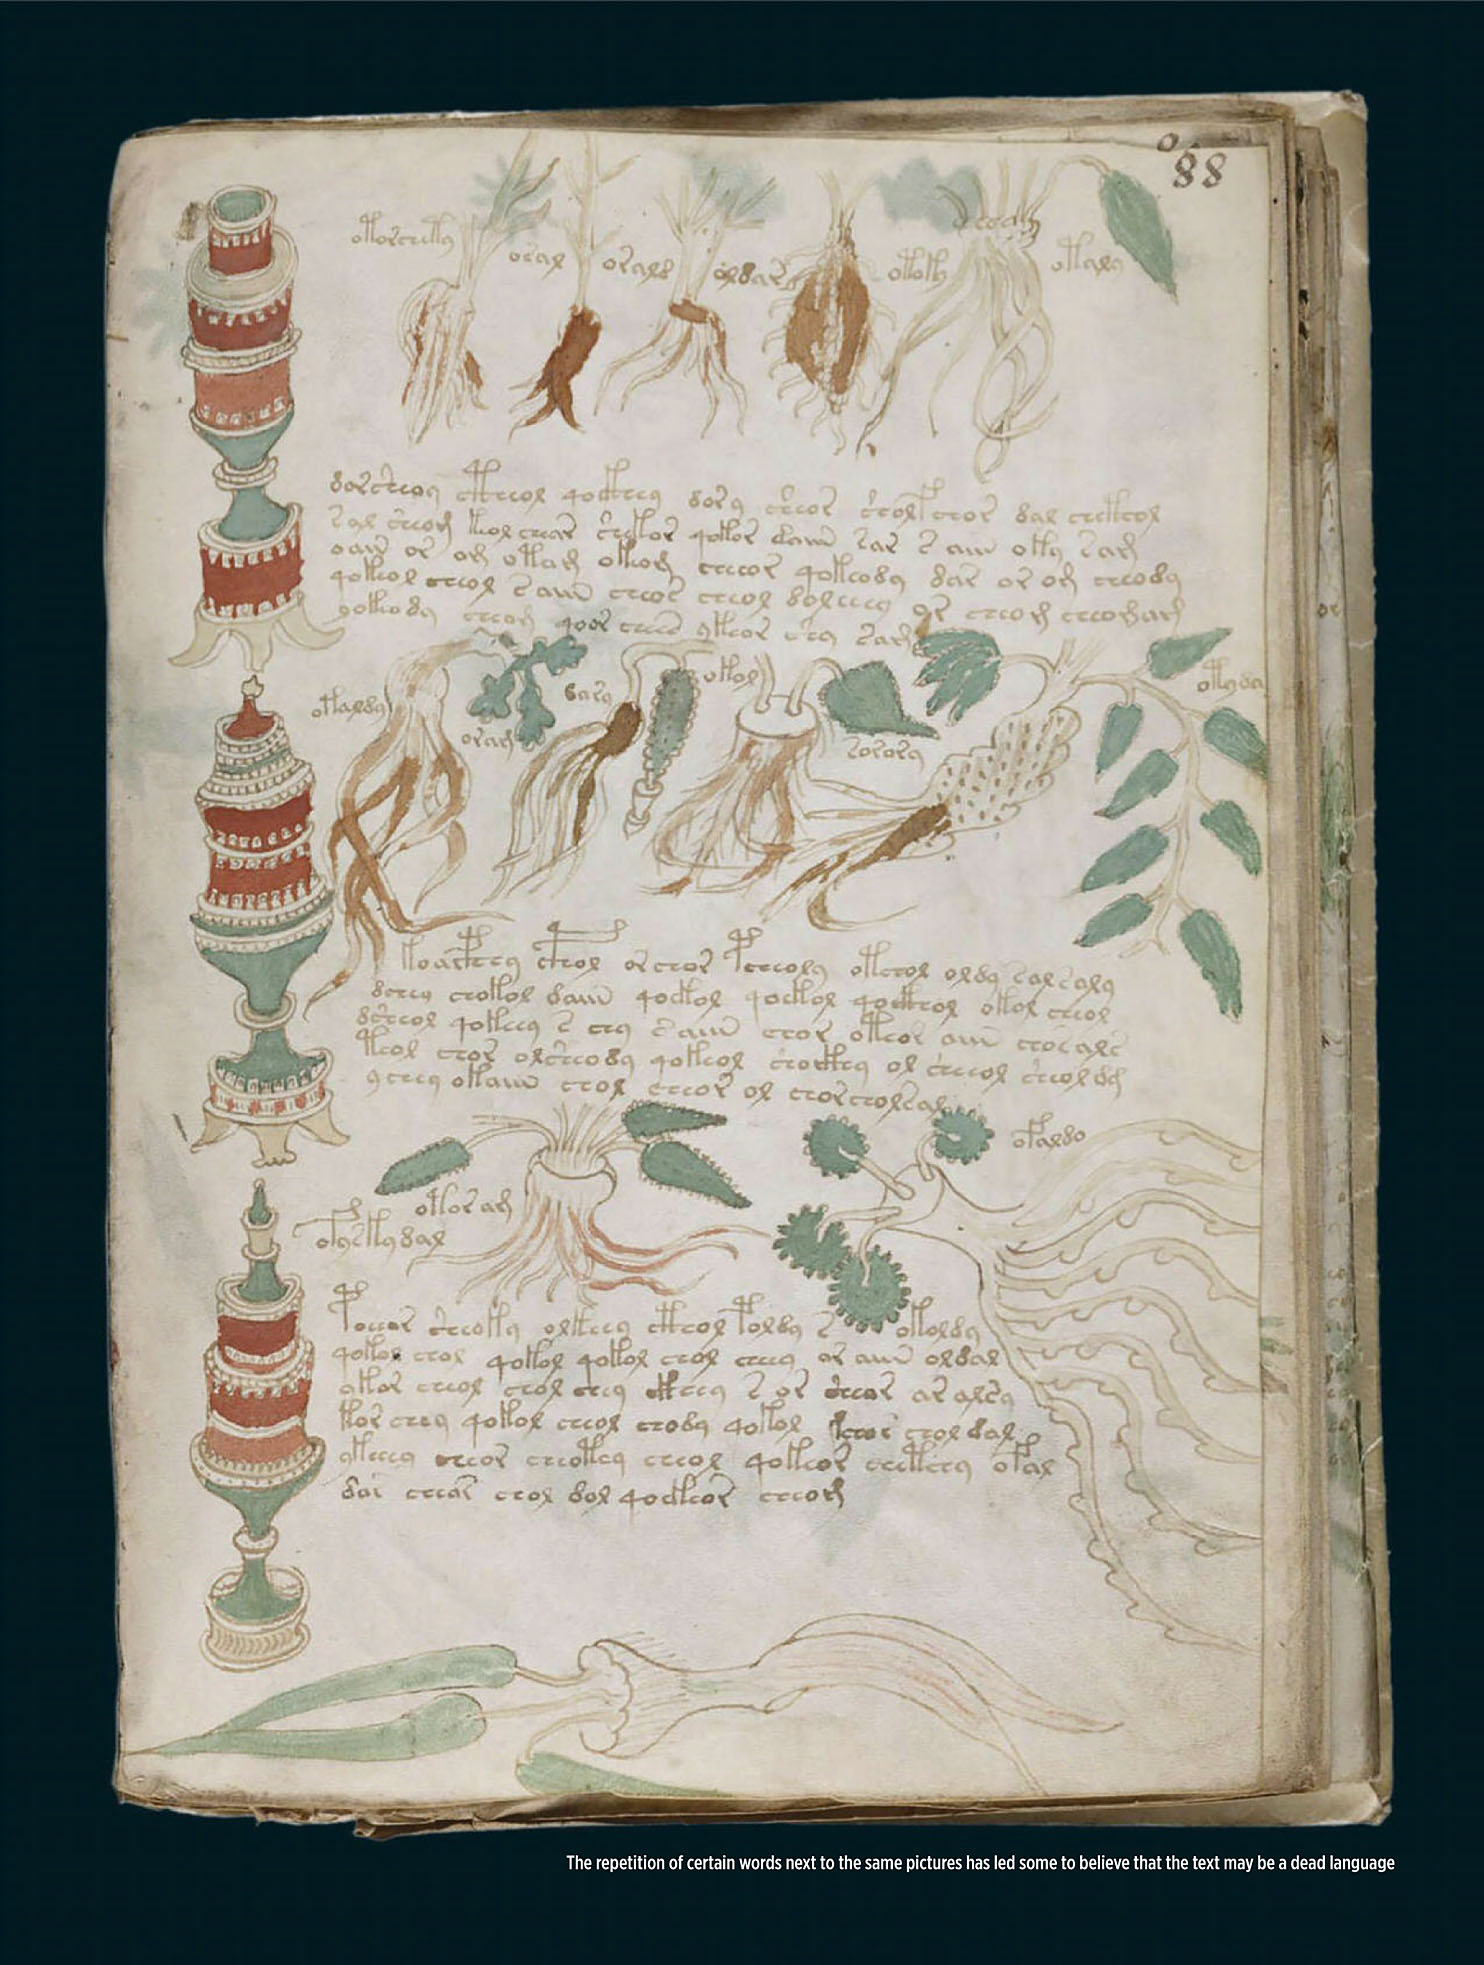 History Revealed 2020-05 Voynich Manuscript-3.jpg